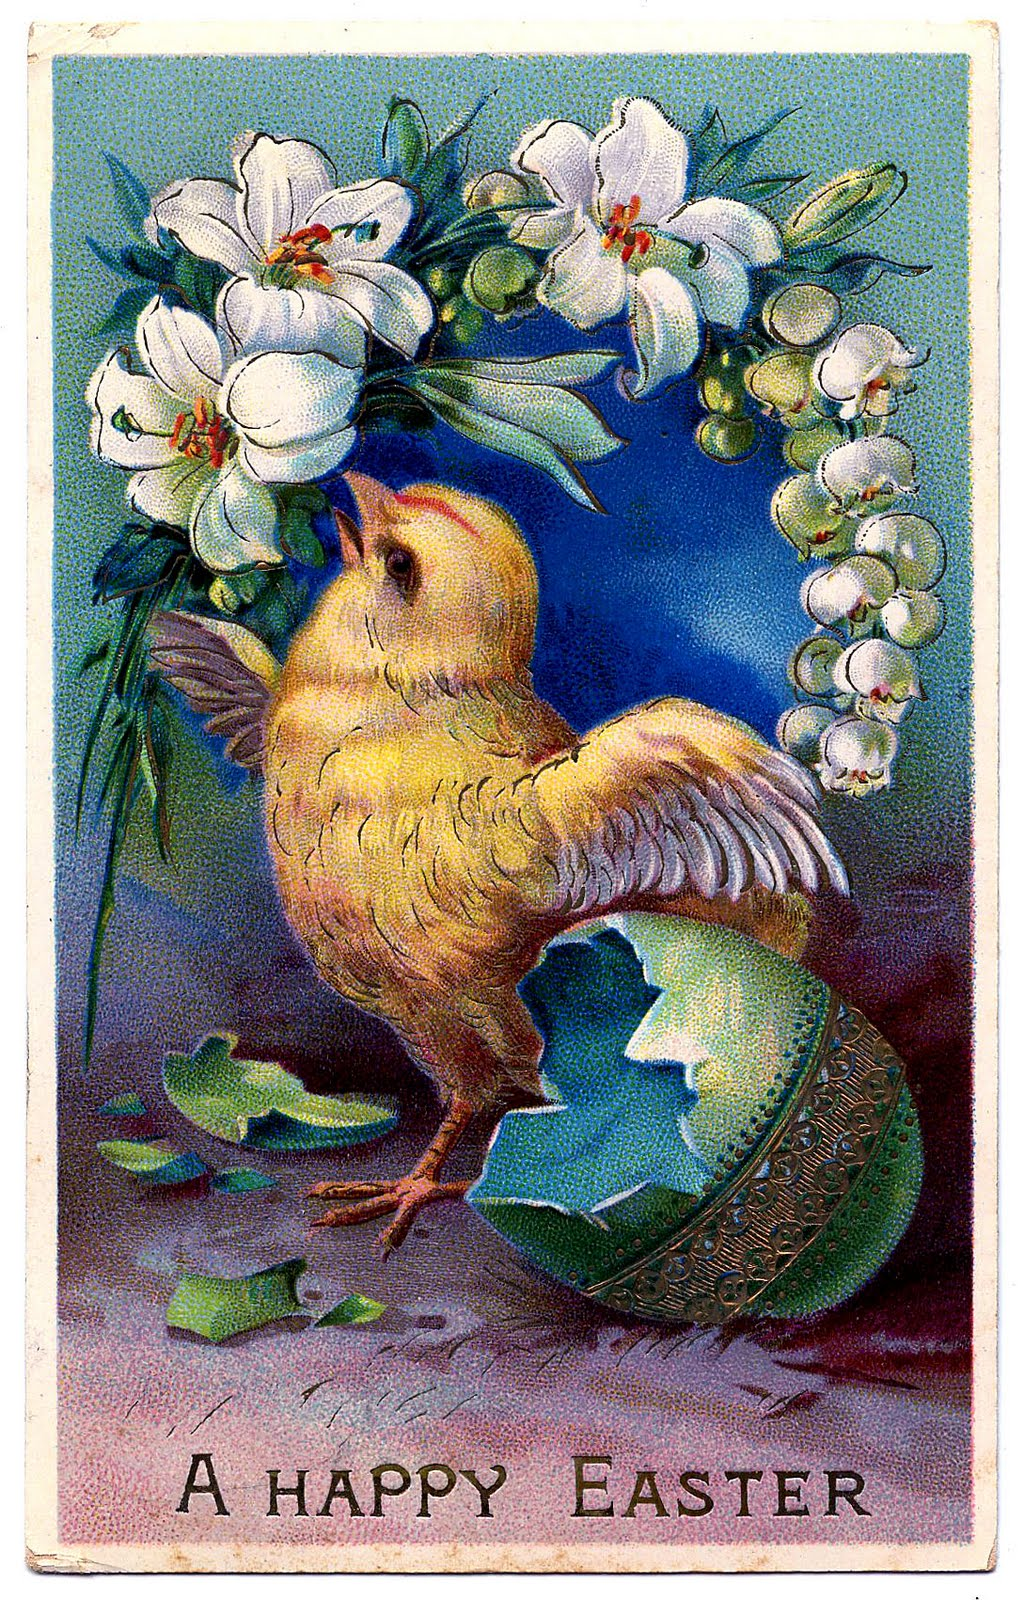 Vintage Easter Clip Art U2013 Sweet Baby Chick With Egg  Free Printable Religious Easter Cards